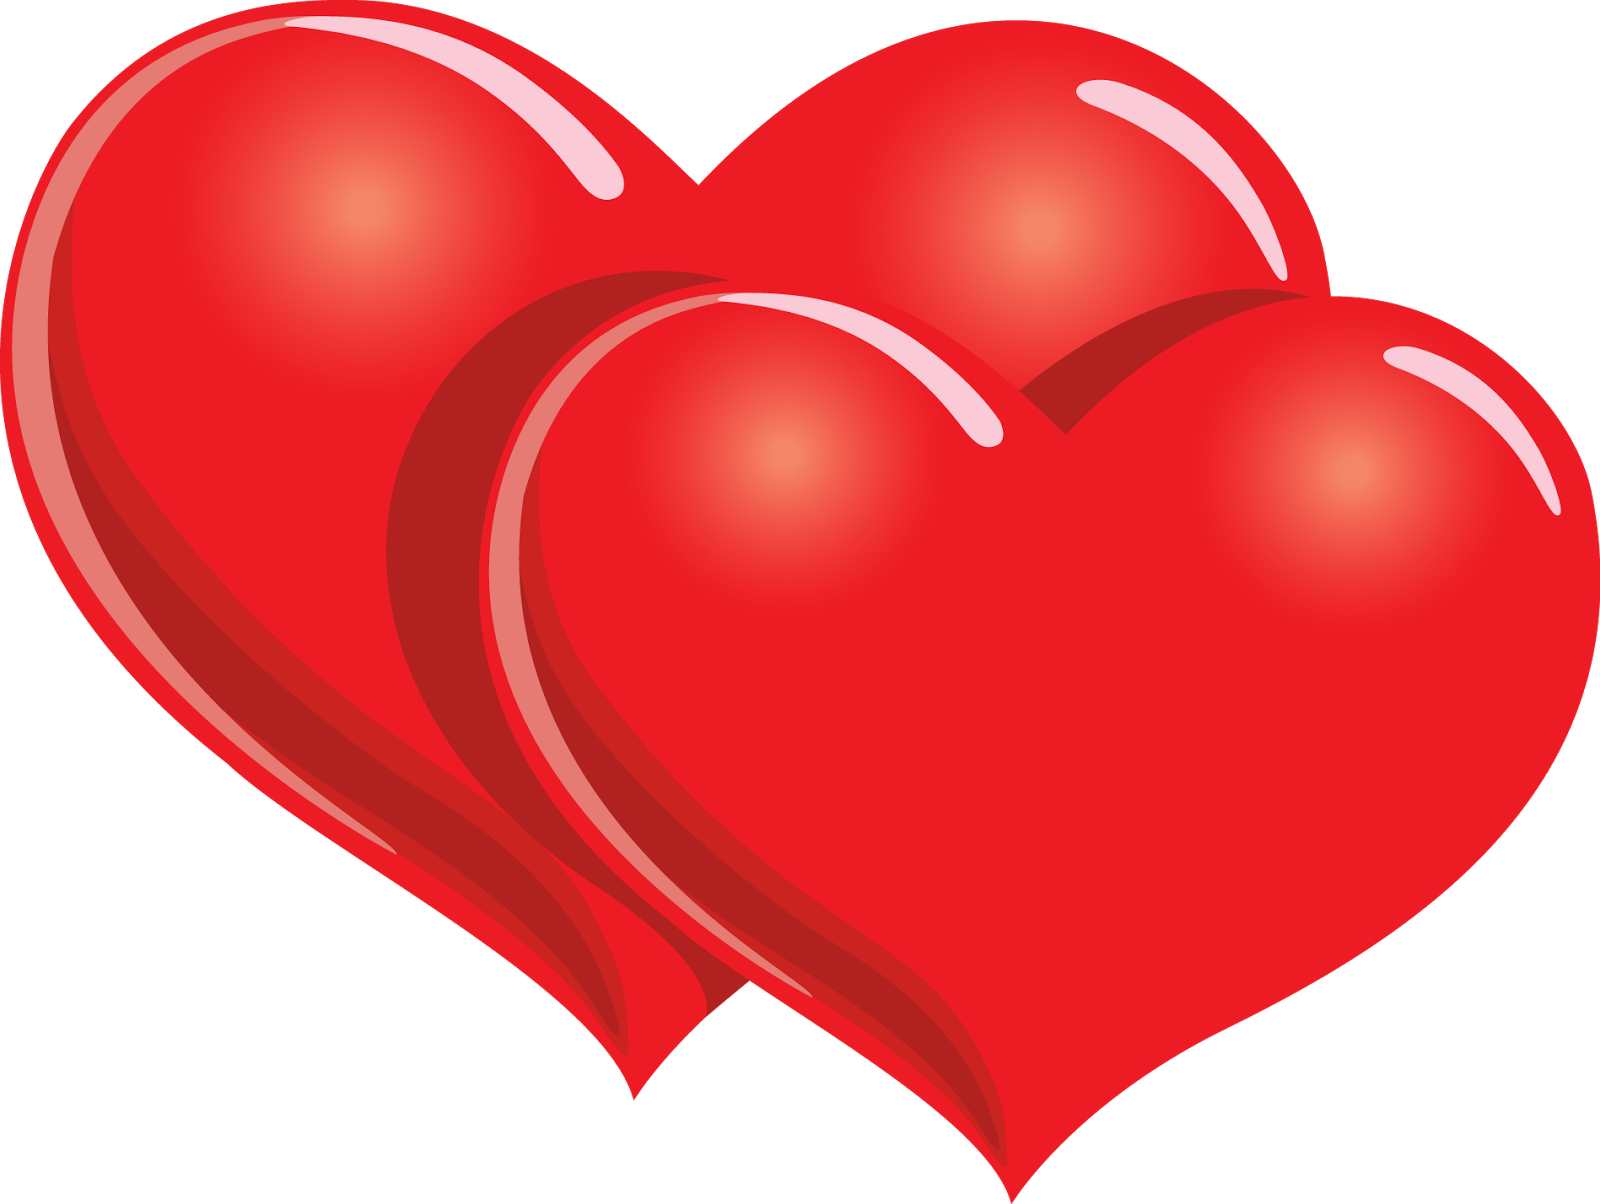 double red heart logo